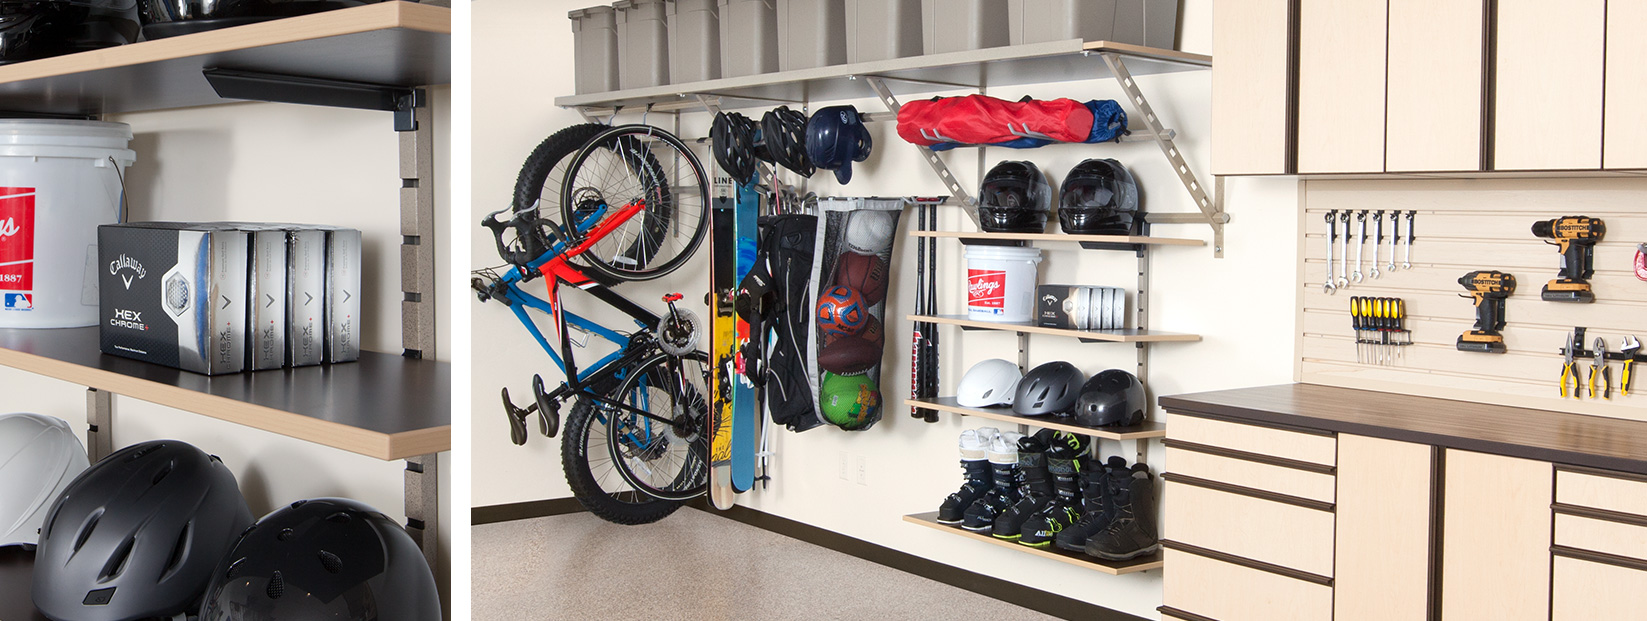 Garage Shelving System St. Louis